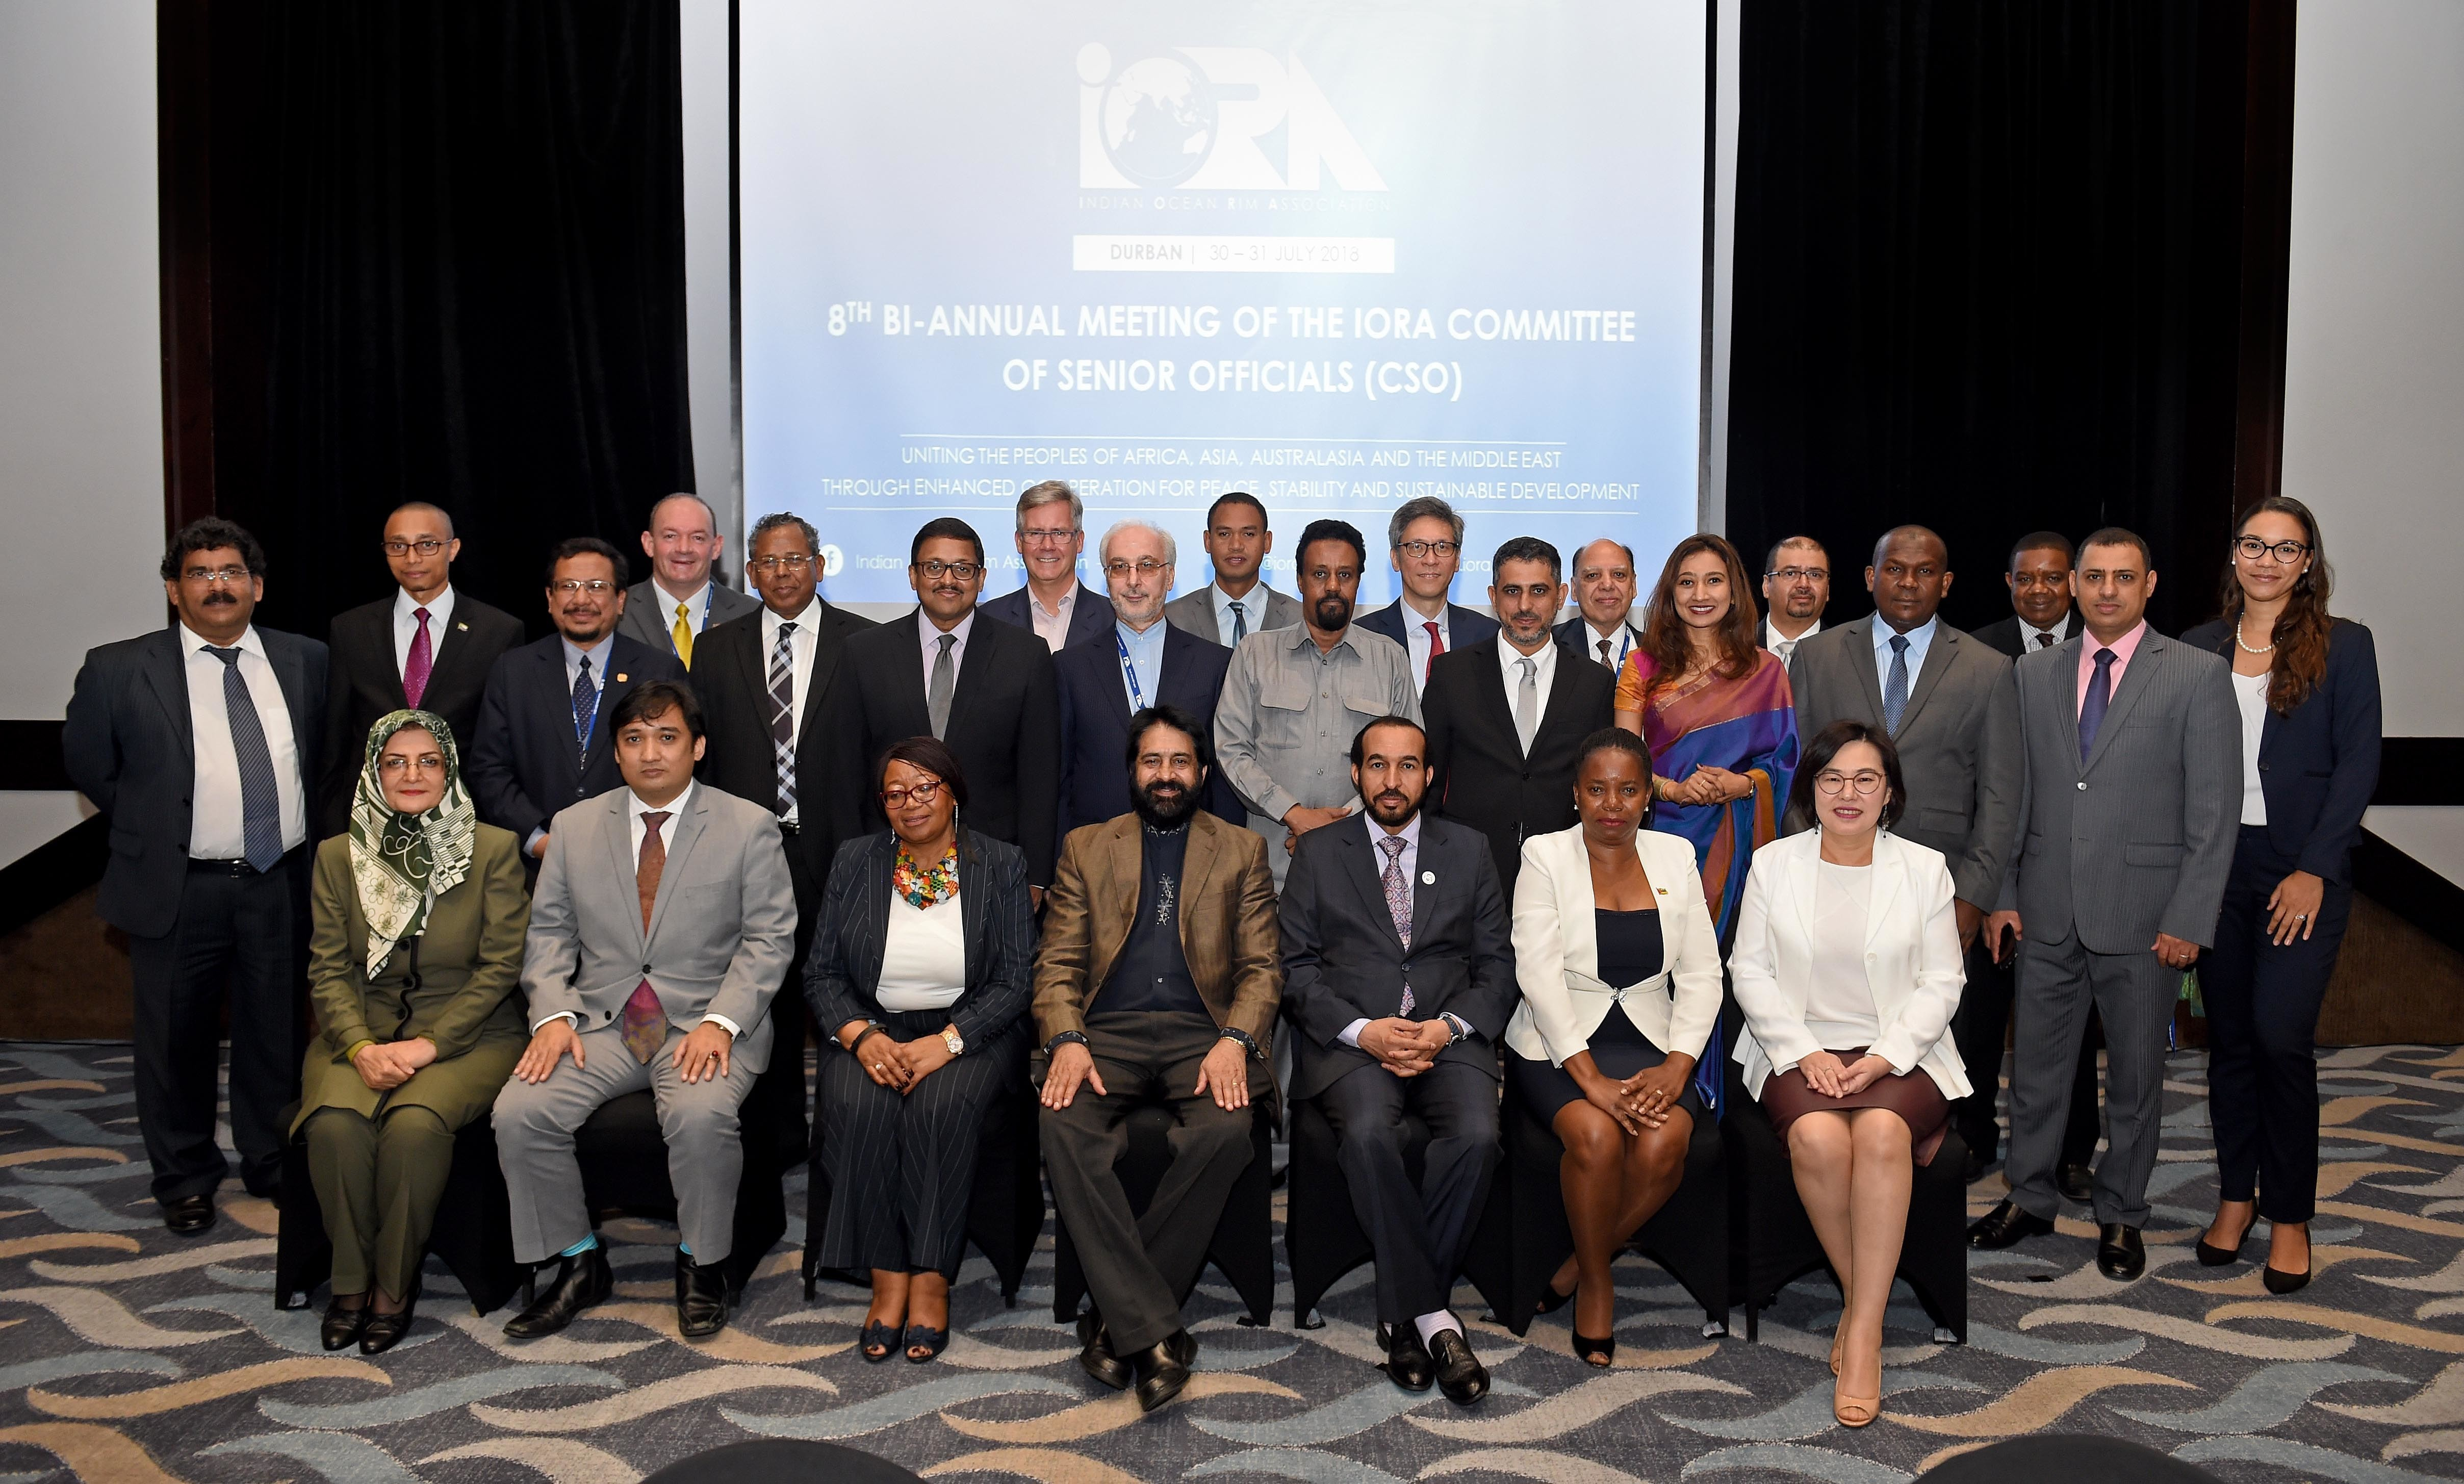 Official Group Photograph of the 8th Bi-Annual Meeting of the IORA Committee of Senior Officials (CSO) 2018 in Durban, South Africa.